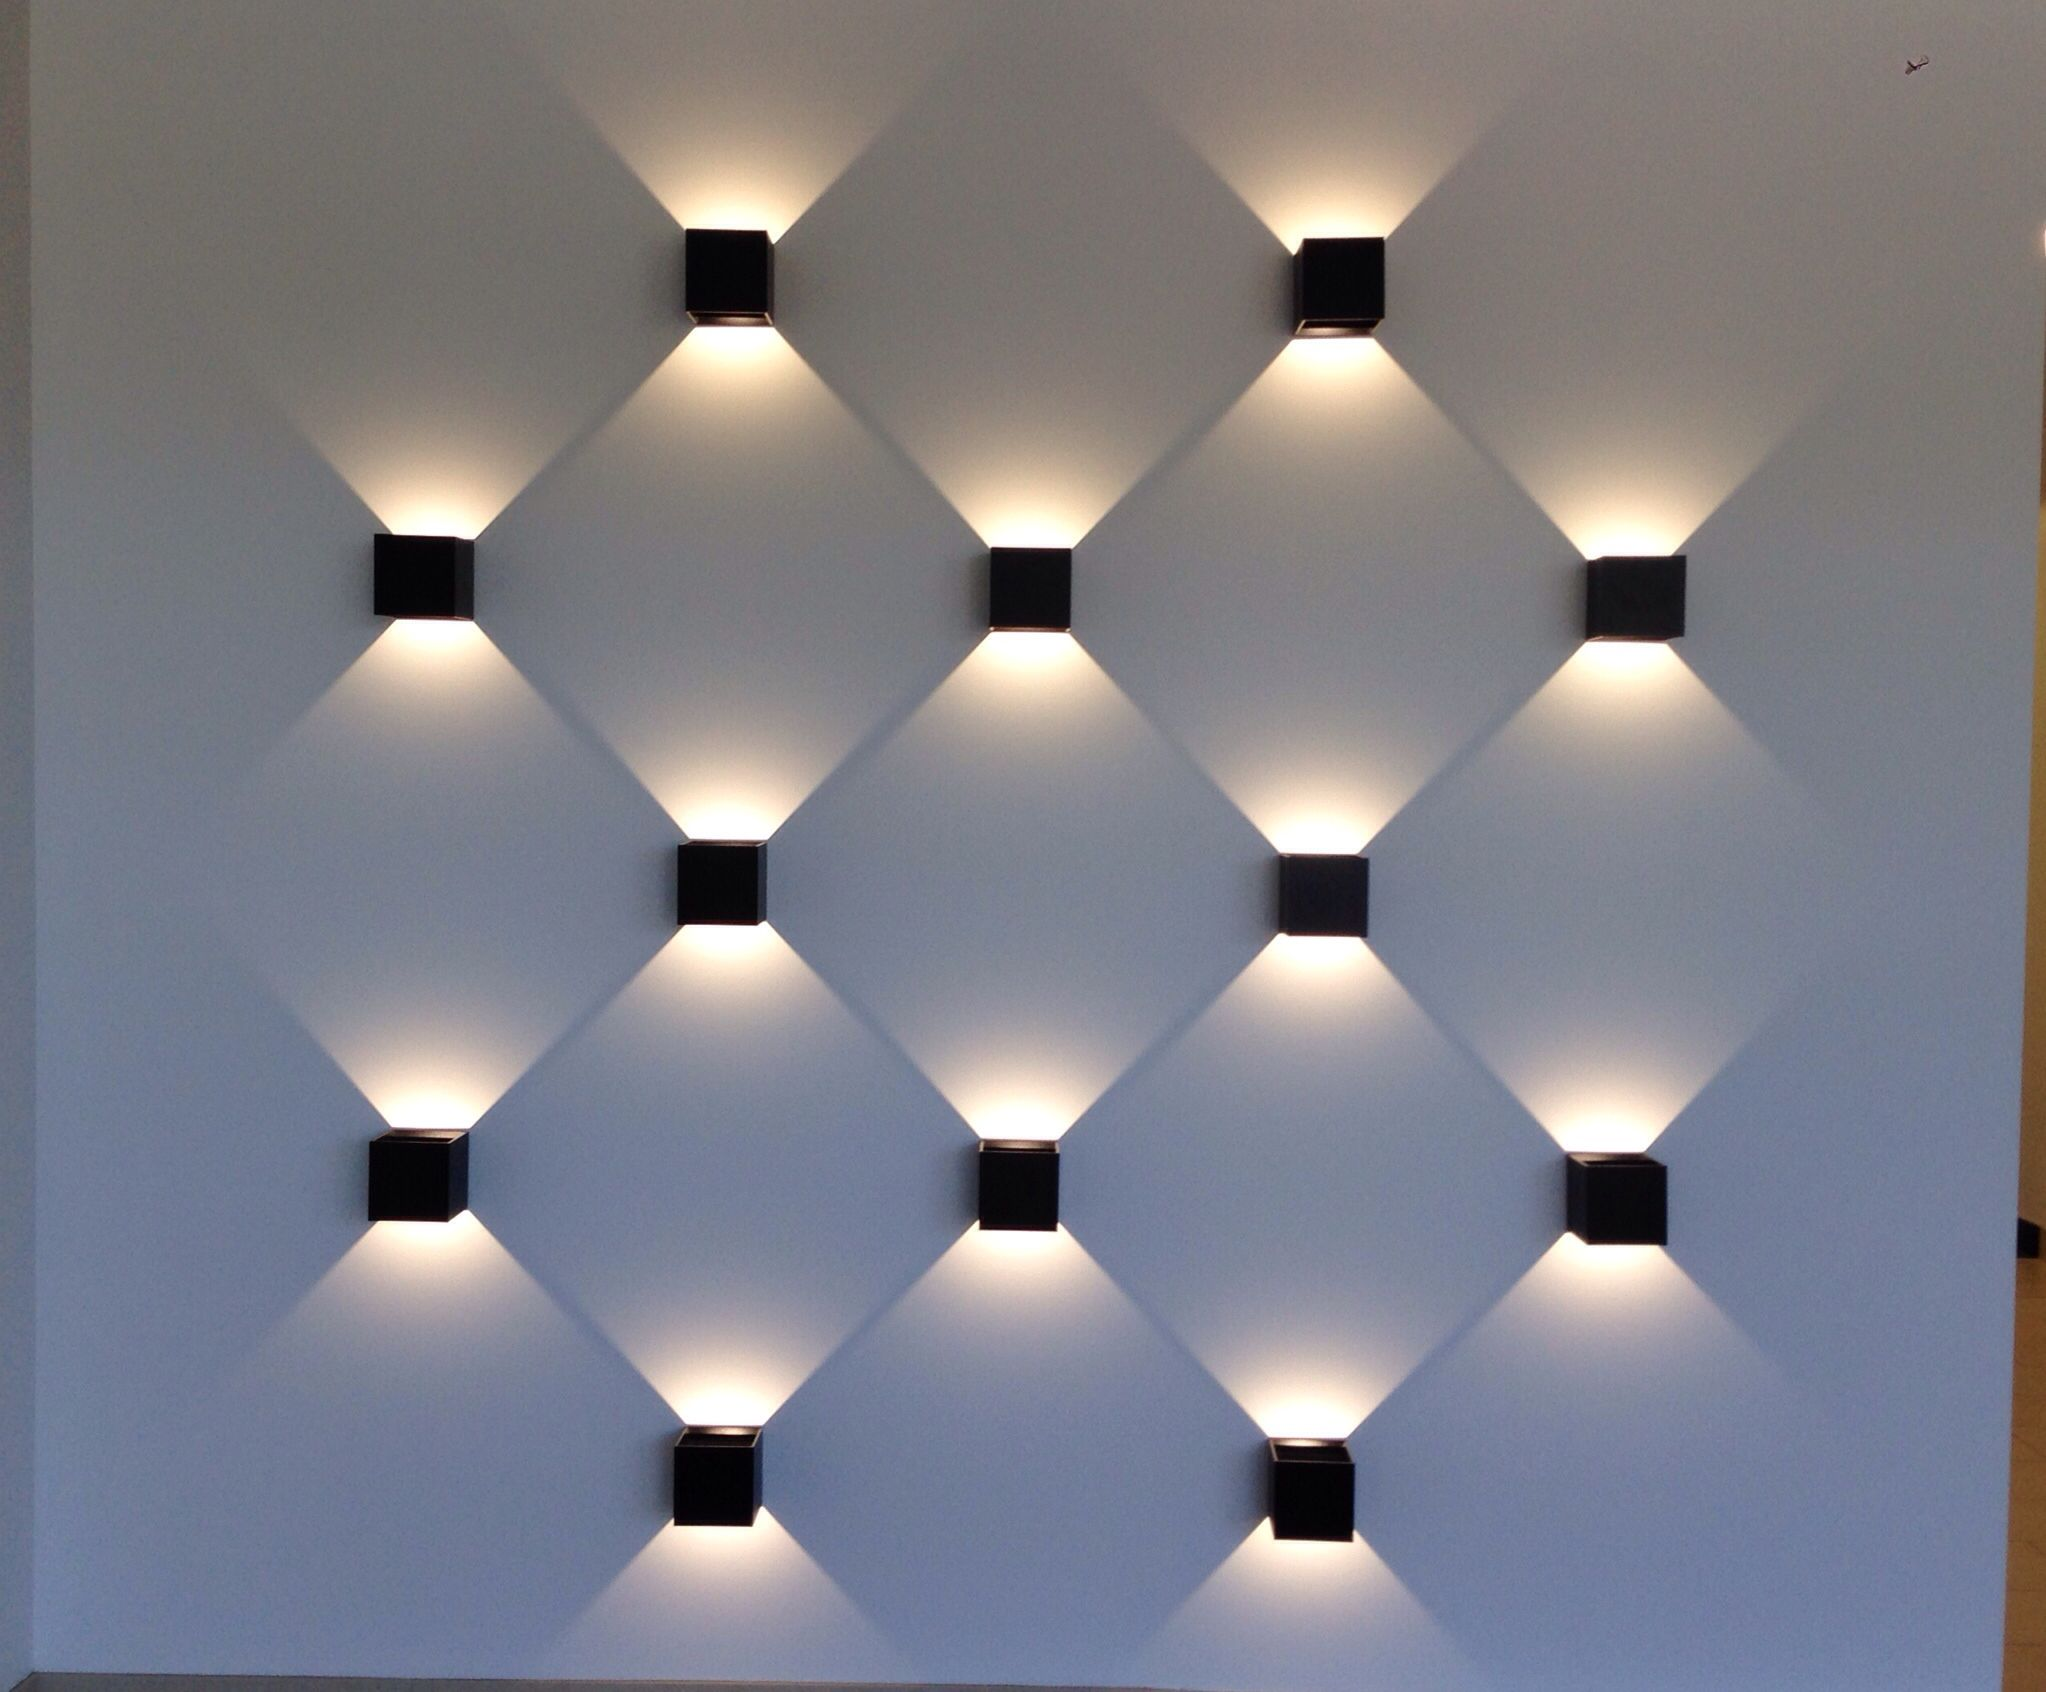 Led Light Wall The Shadows Create The Multidimensional Effect Would Look Great Indoors Or Out Wall Lighting Design Wall Lights Compound Wall Design